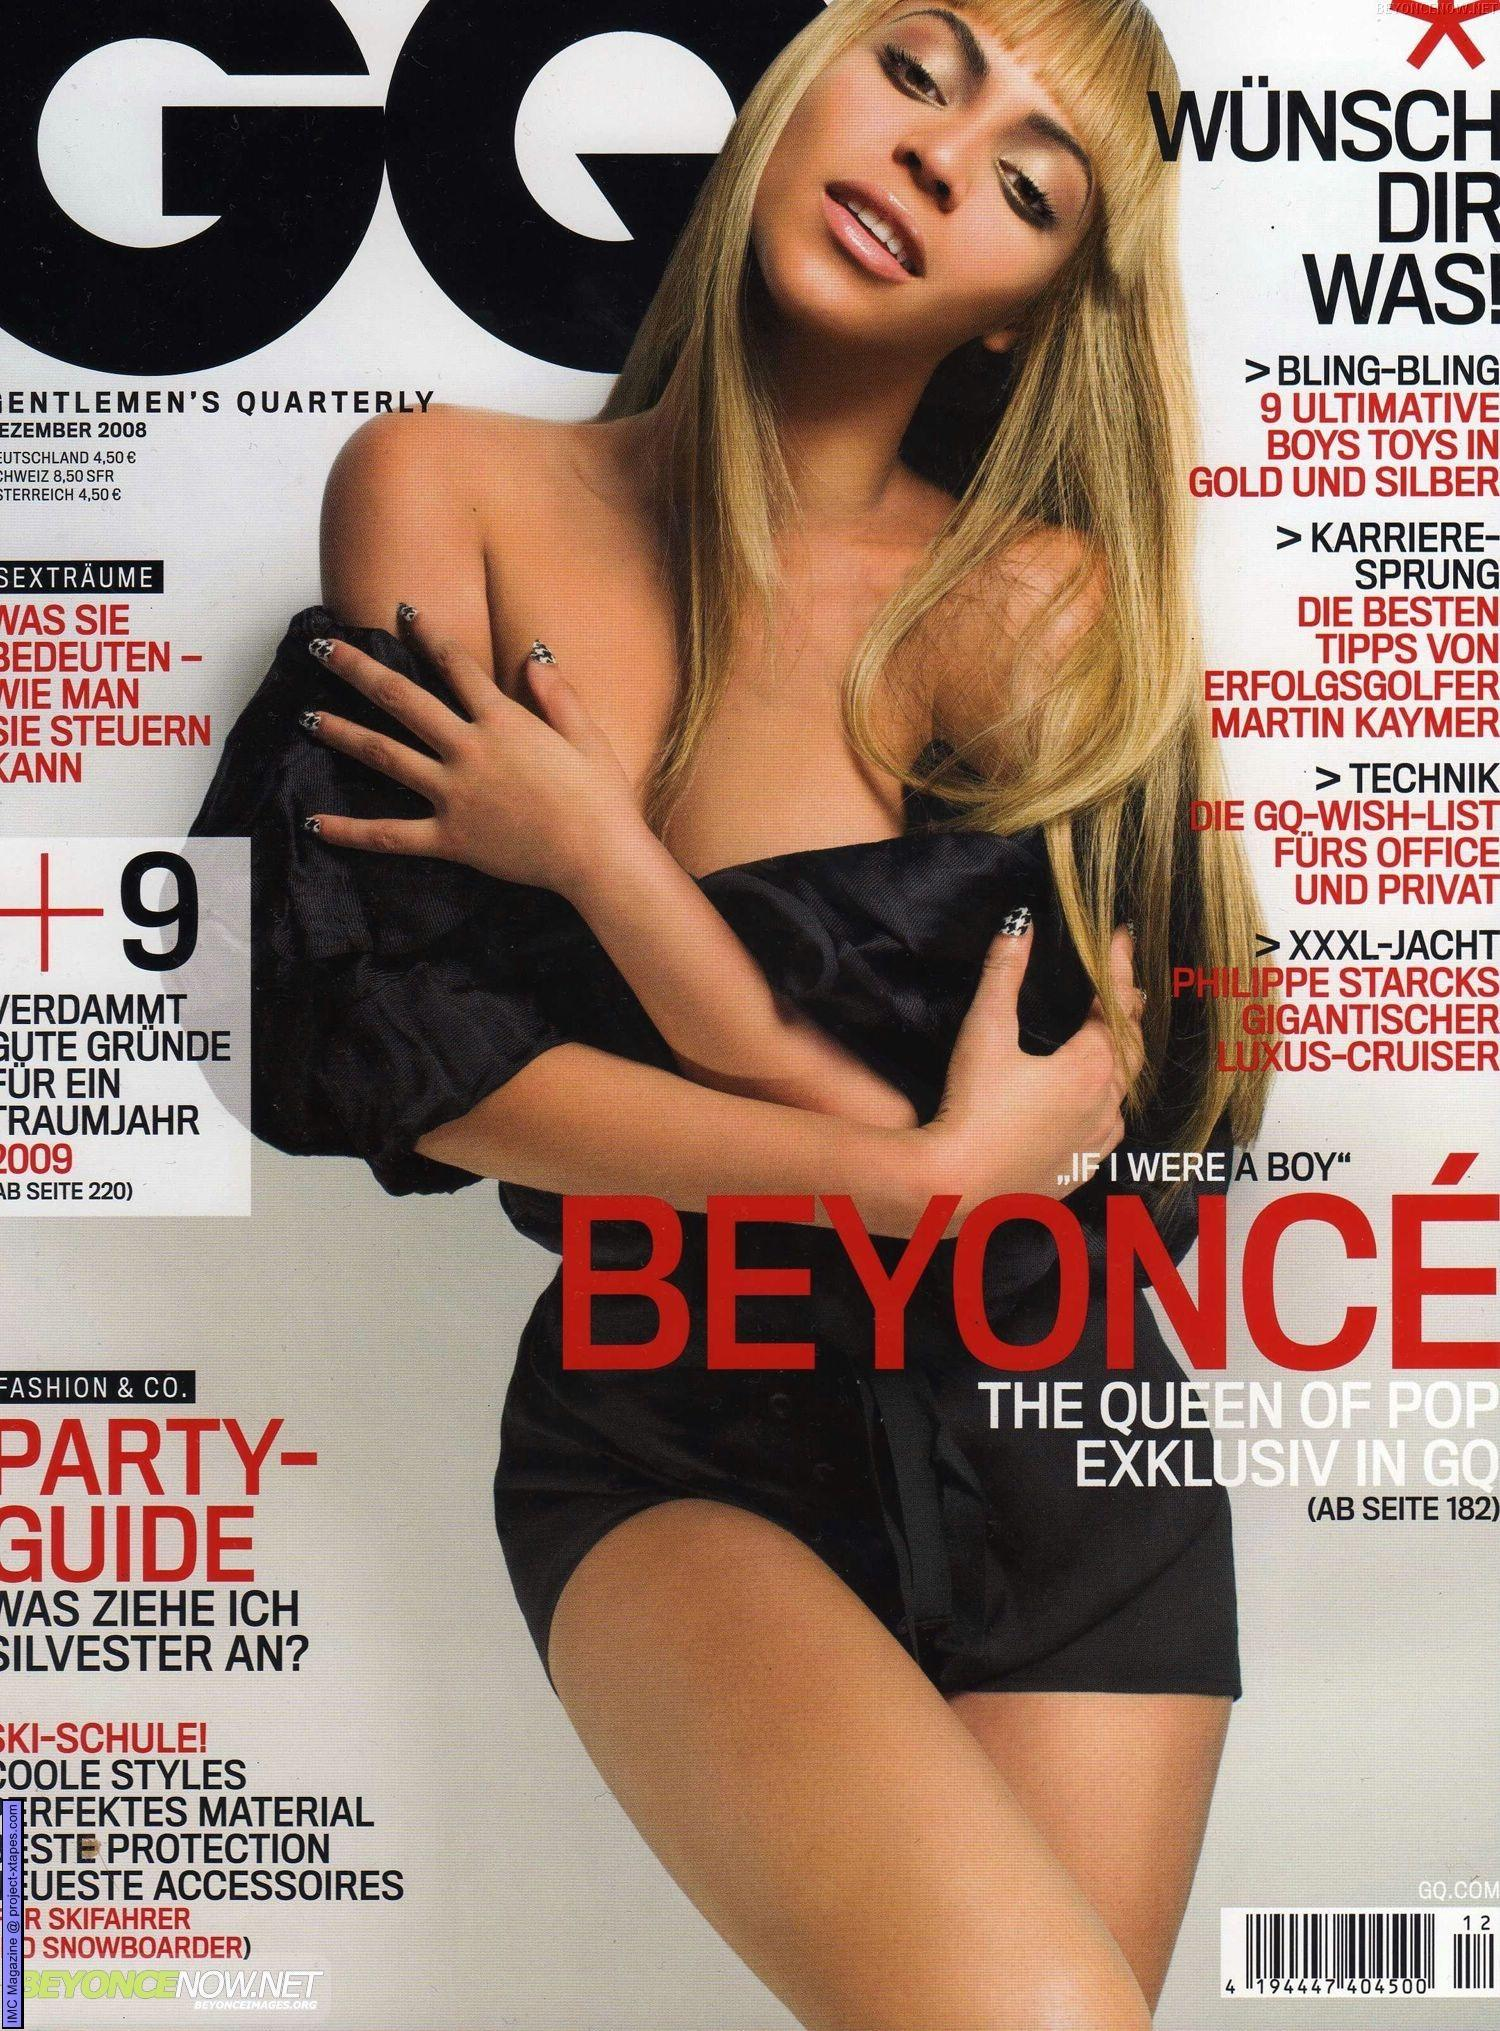 Gq Magazine The Secrets Of R Kelly: BEYONCE GQ MAGAZINE SPREAD